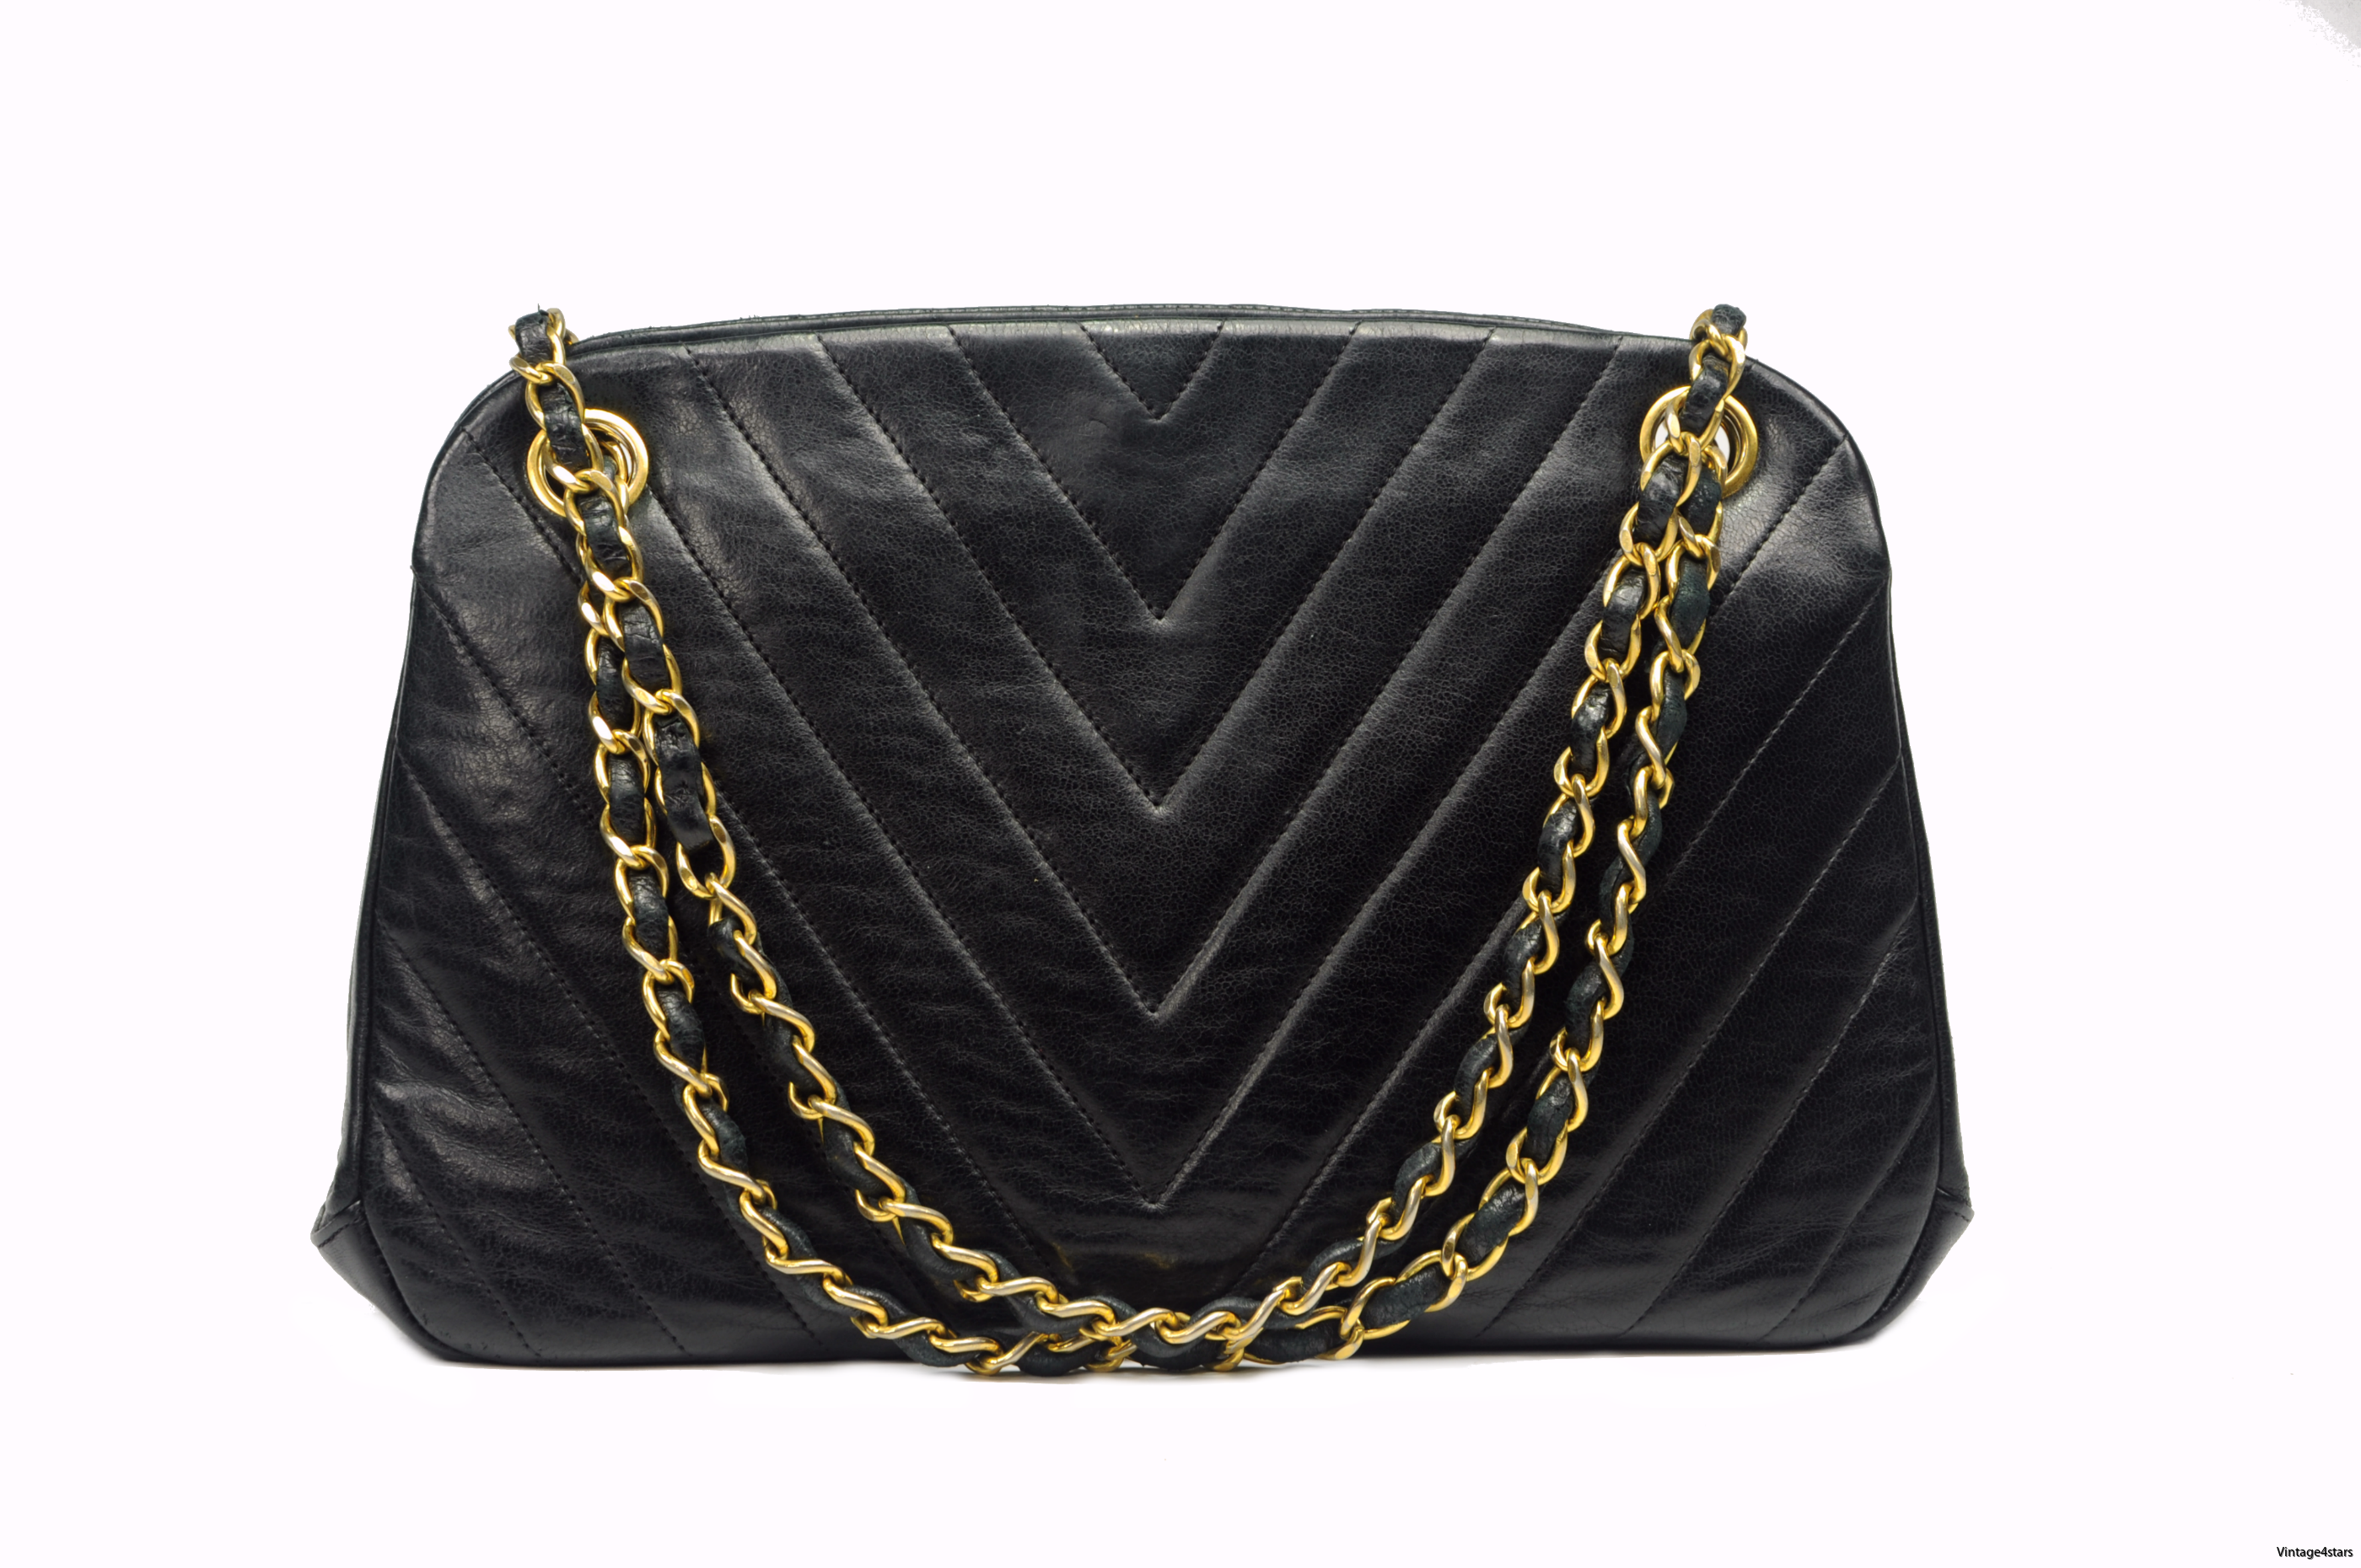 CHANEL Lambskin Kisslock 100